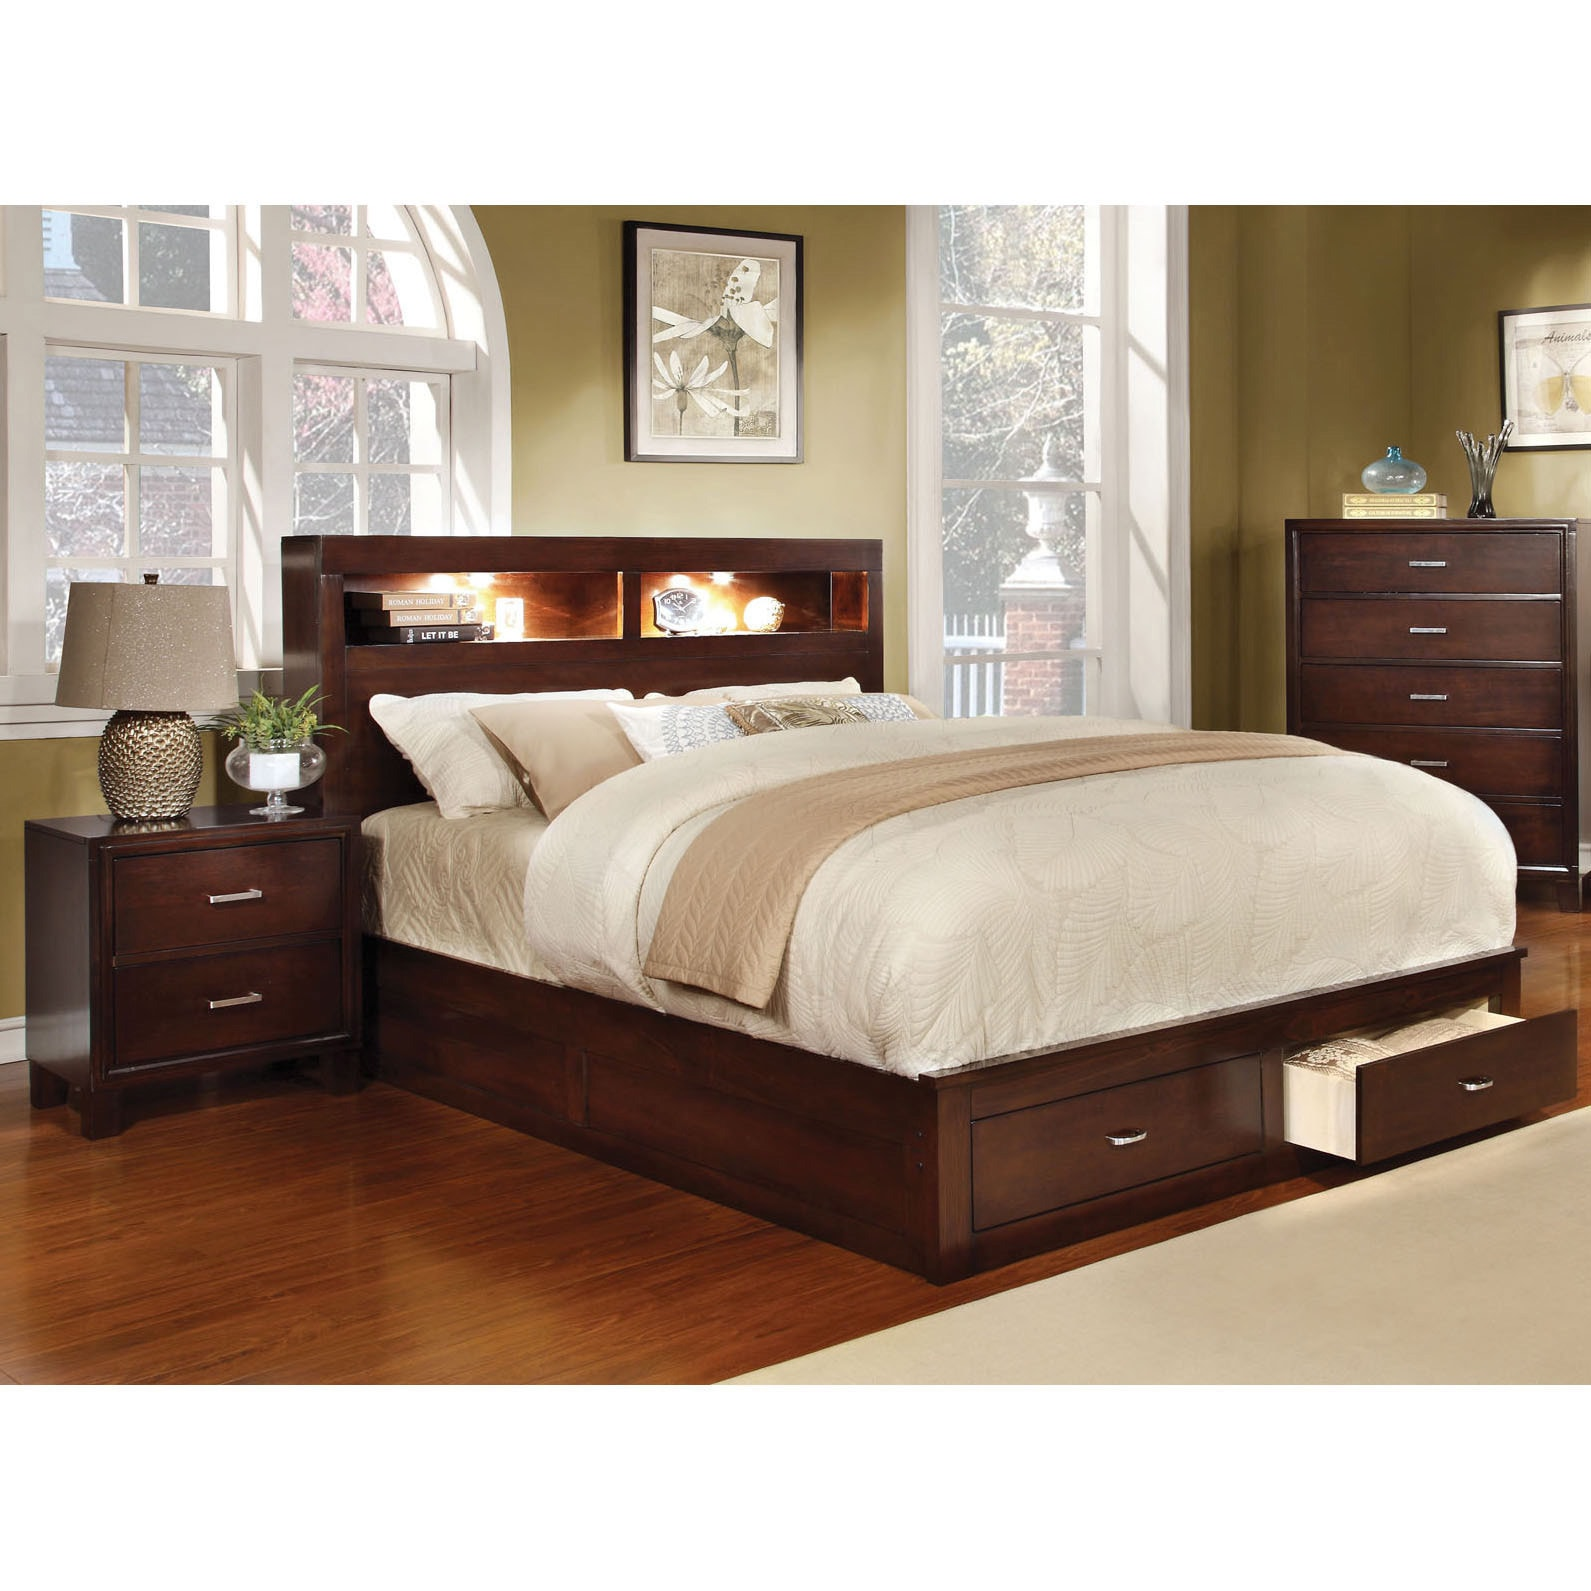 Shop Clement Storage Platform Wood Bed by Furniture of America ...